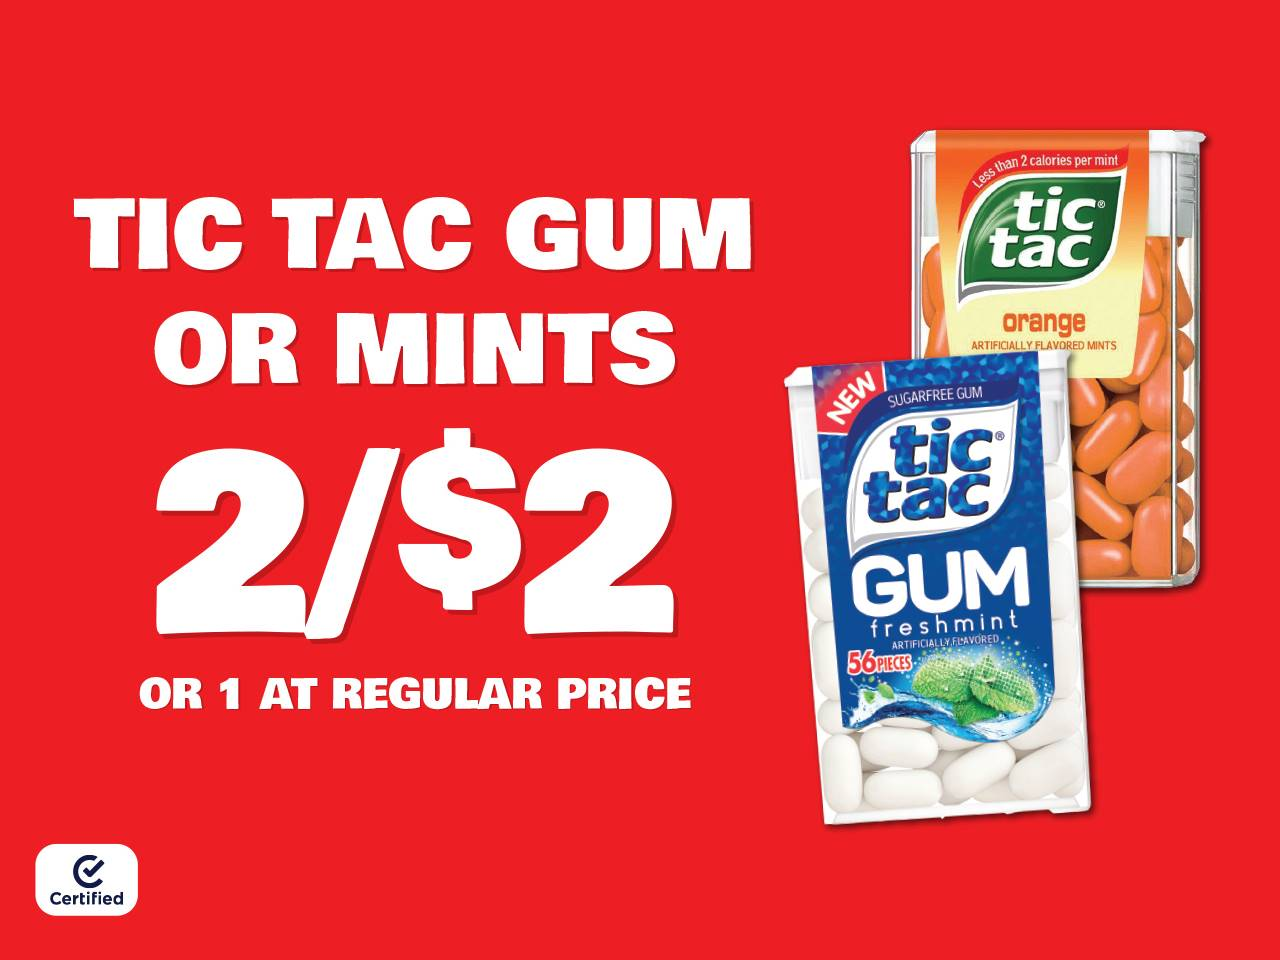 Tic Tac Gum or Mints 2 for $2 or 1 at Reg Price